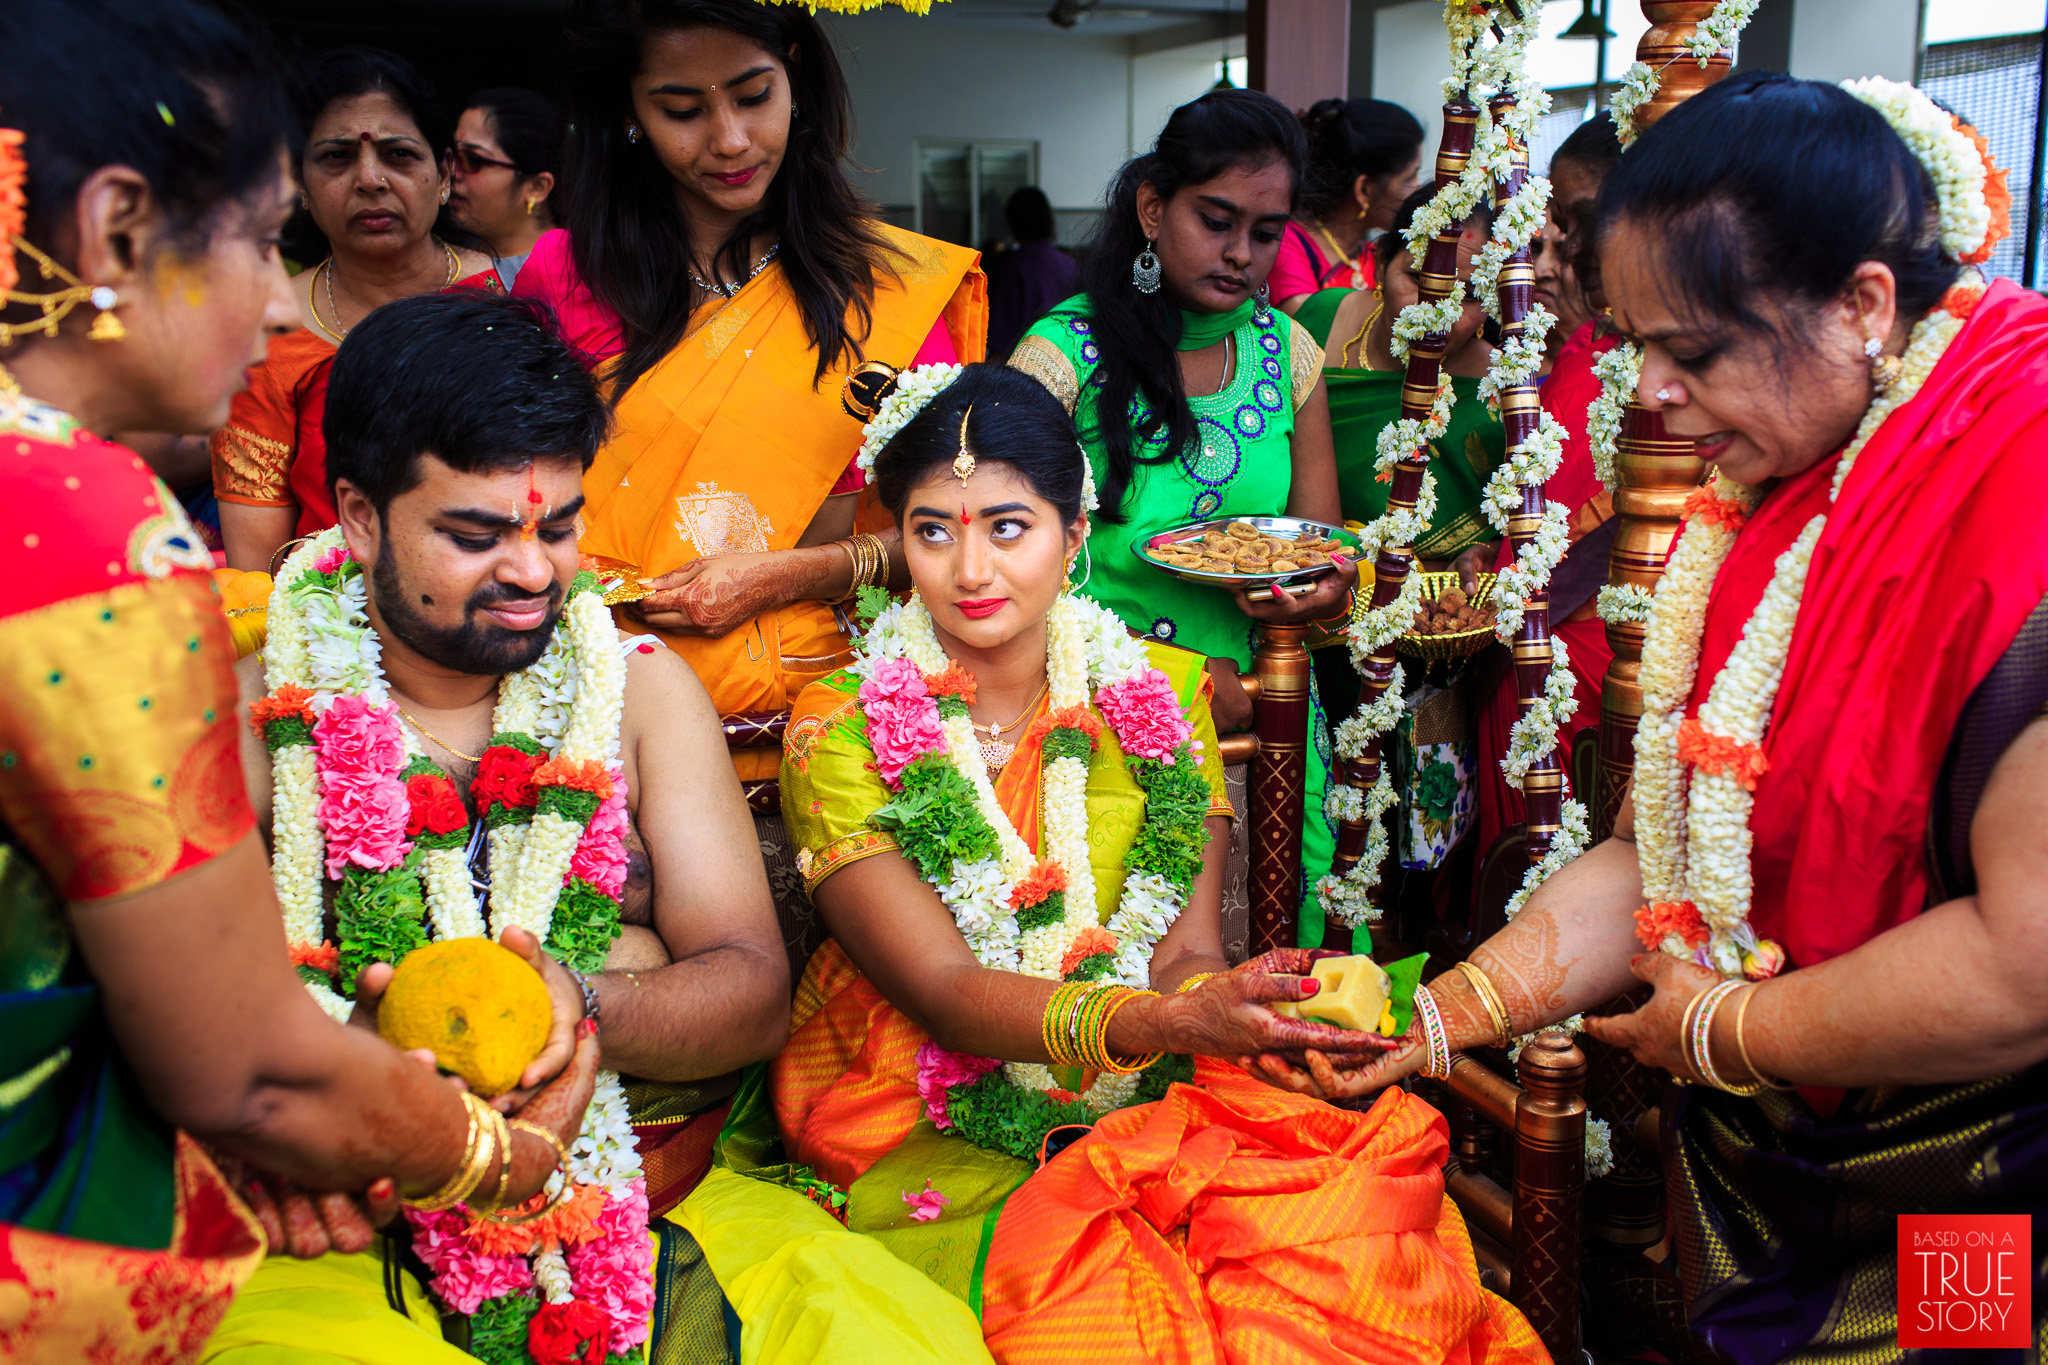 Tambrahm-Candid-Wedding-Photographers-Bangalore-0059.jpg